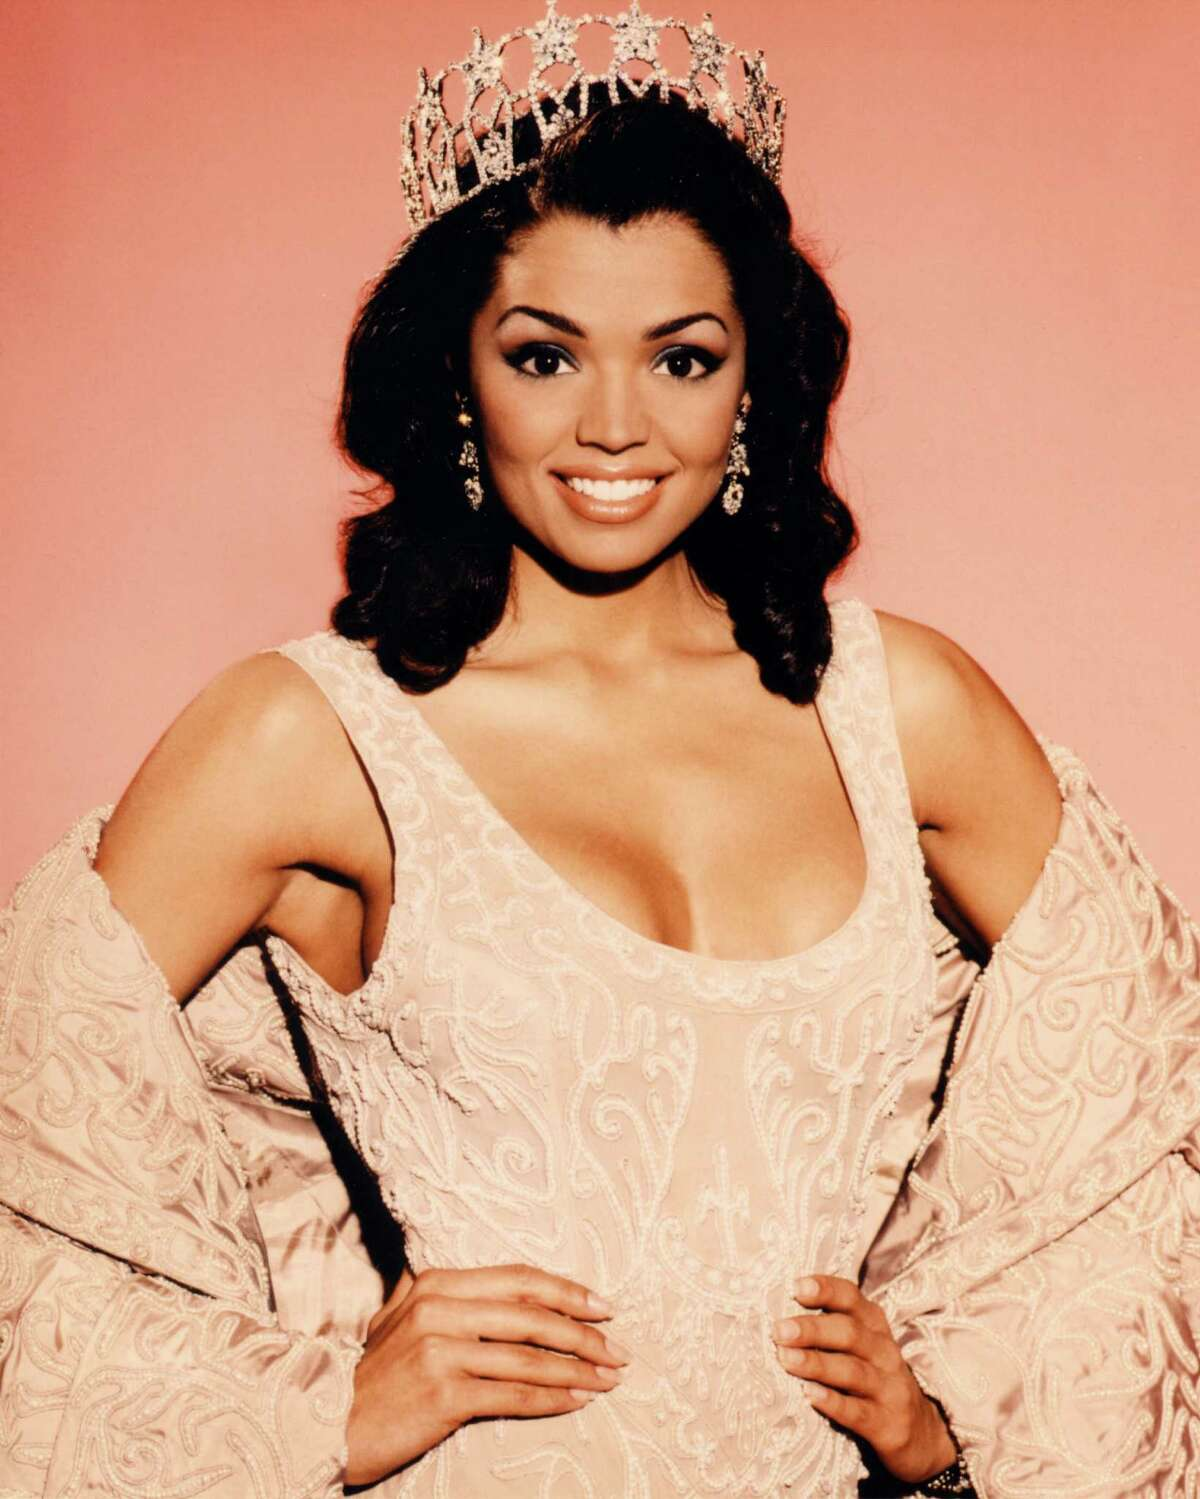 Miss USA 1995 Chelsi Smith Deer Park, TexasWould later win Miss Universe 1995